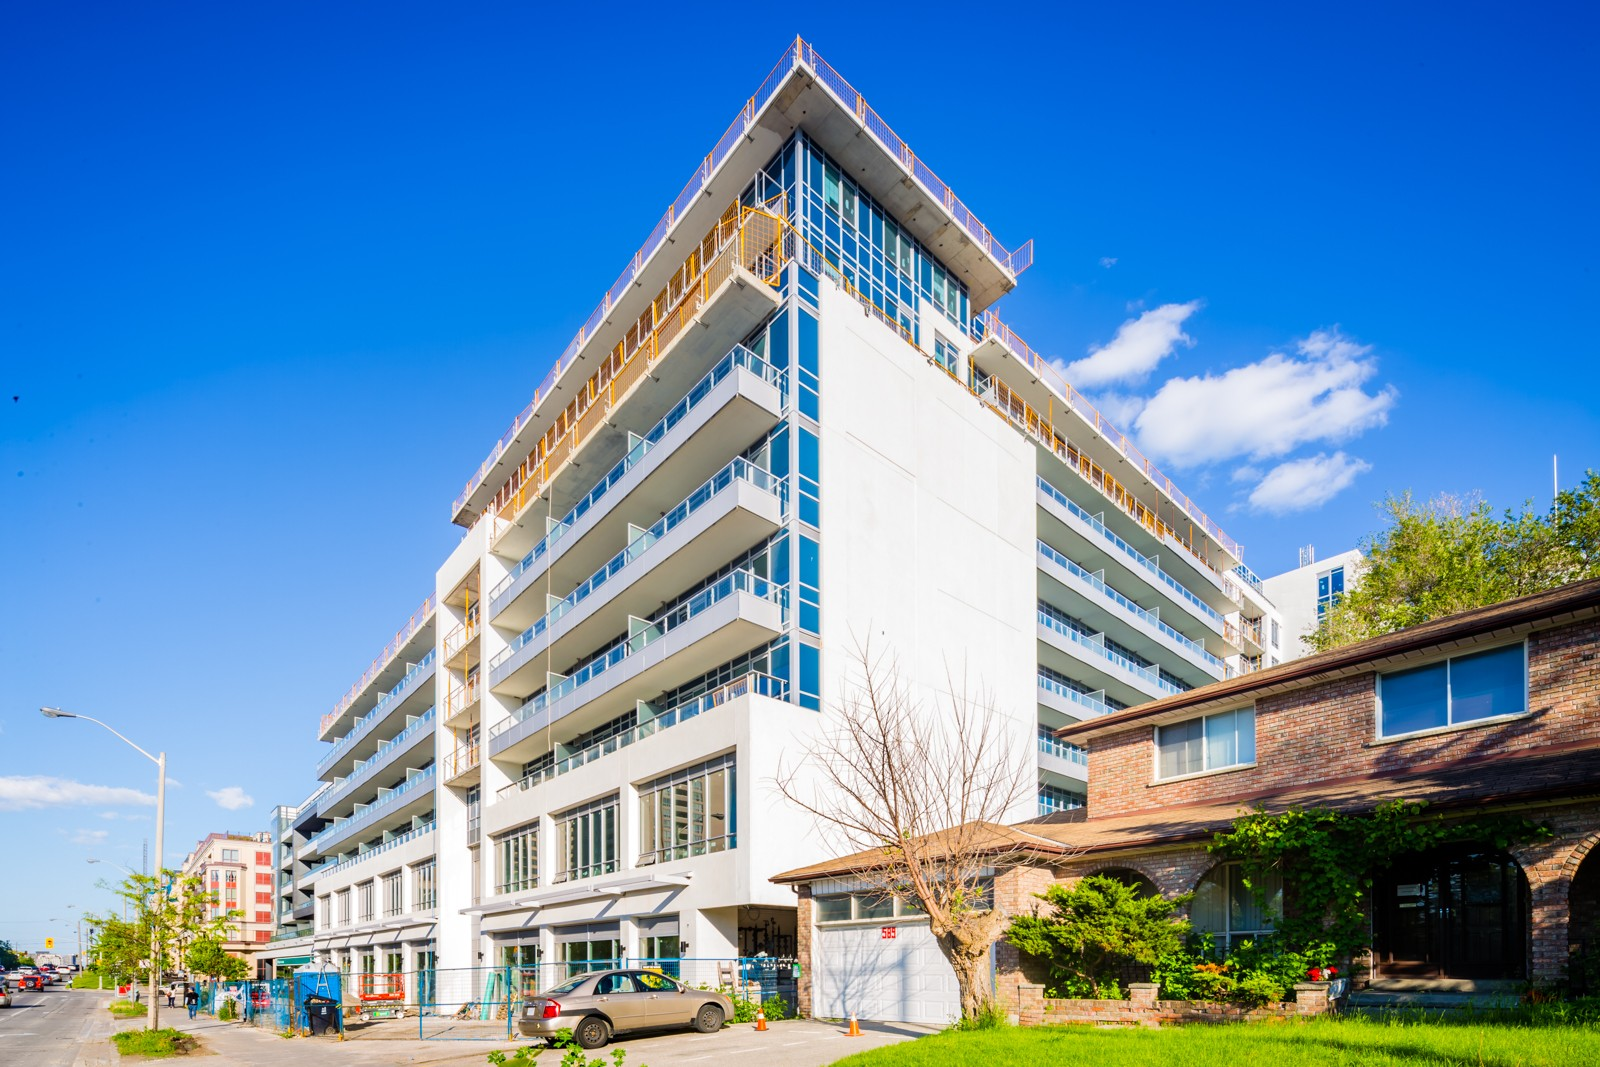 The Village Residences at 591 Sheppard Ave E, Toronto 1